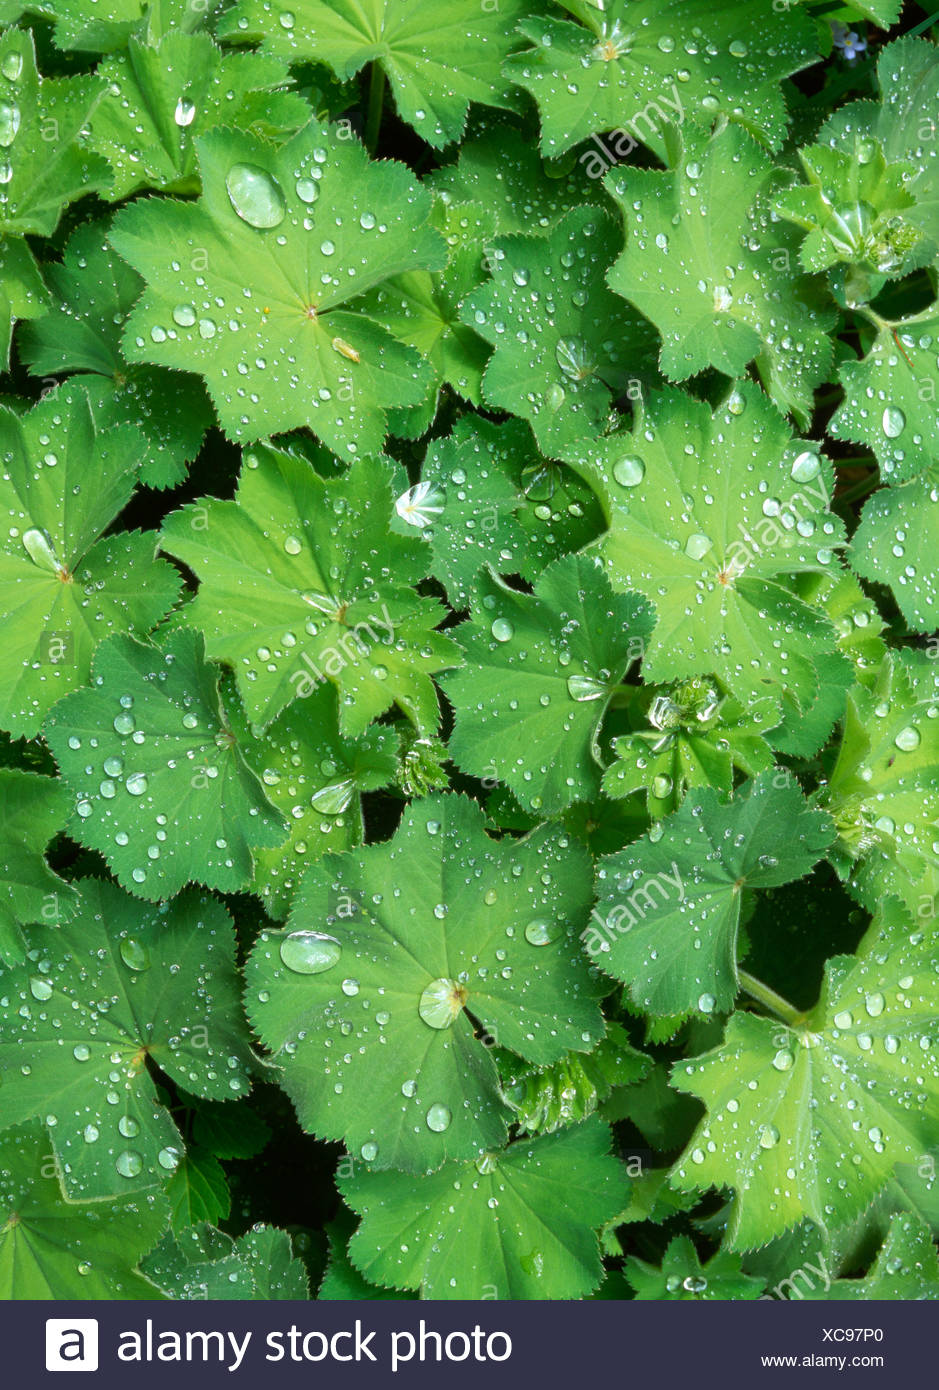 Dewdrops, water drops covered a leafy green garden plant, Schwaz, Tyrol, Austria, Europe - Stock Image